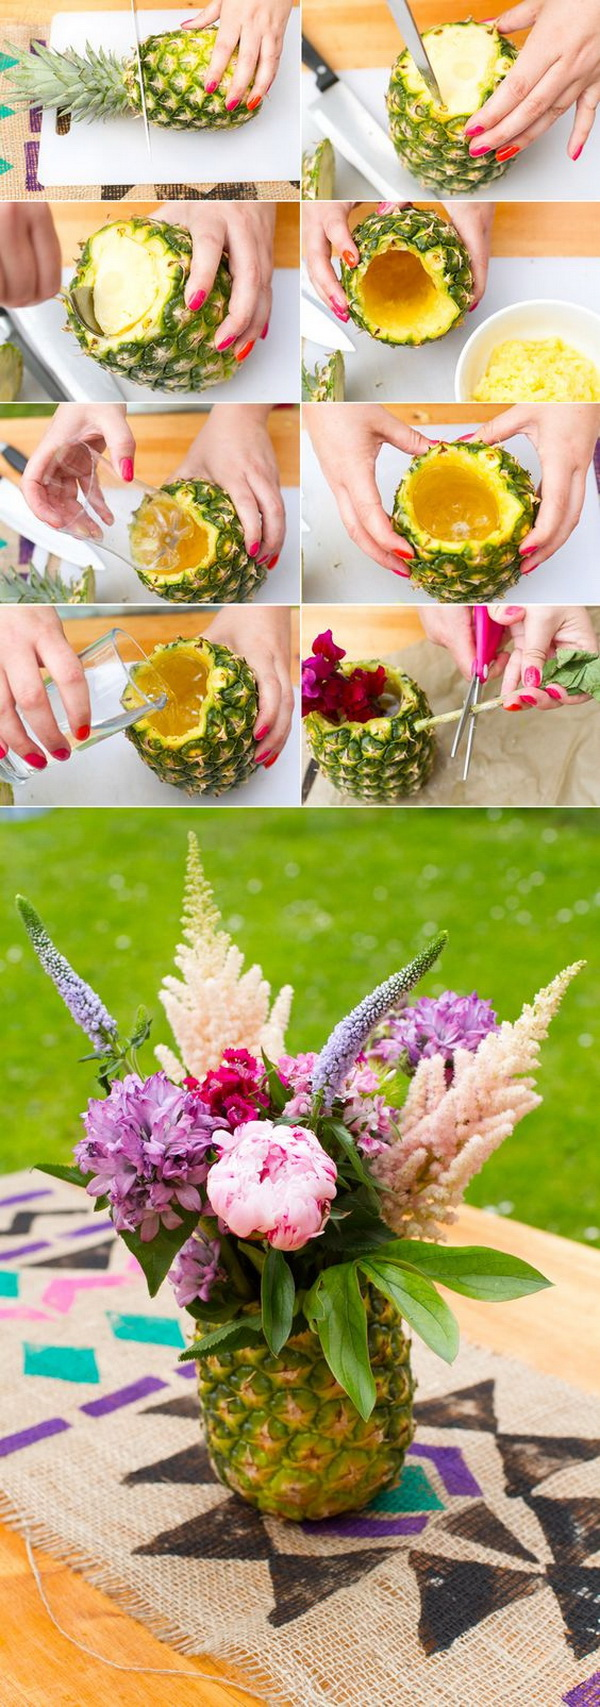 Fun Pineapple Floral Arrangement. Create unique fruity floral arrangement with pineapples that look like they were styled by a professional florist. These tropical vases will add a luxe element to any special event, from a birthday party to a bridal shower.